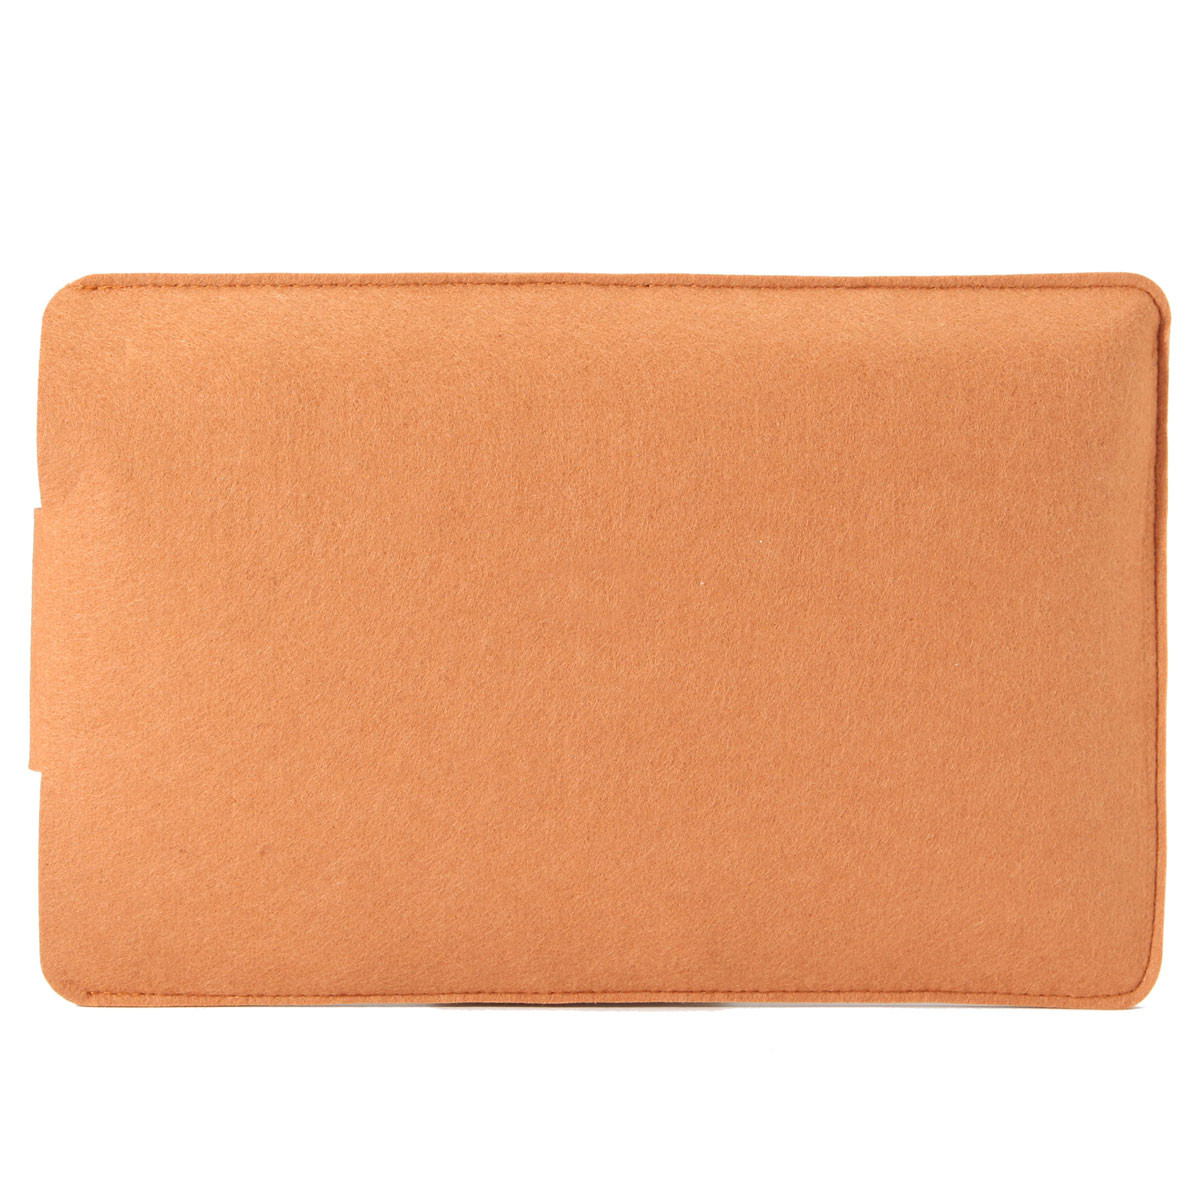 15 Inch Ultra Thin Felt Sleeve Laptop Soft Case Bag For Laptop Notebook MacBook Air Pro